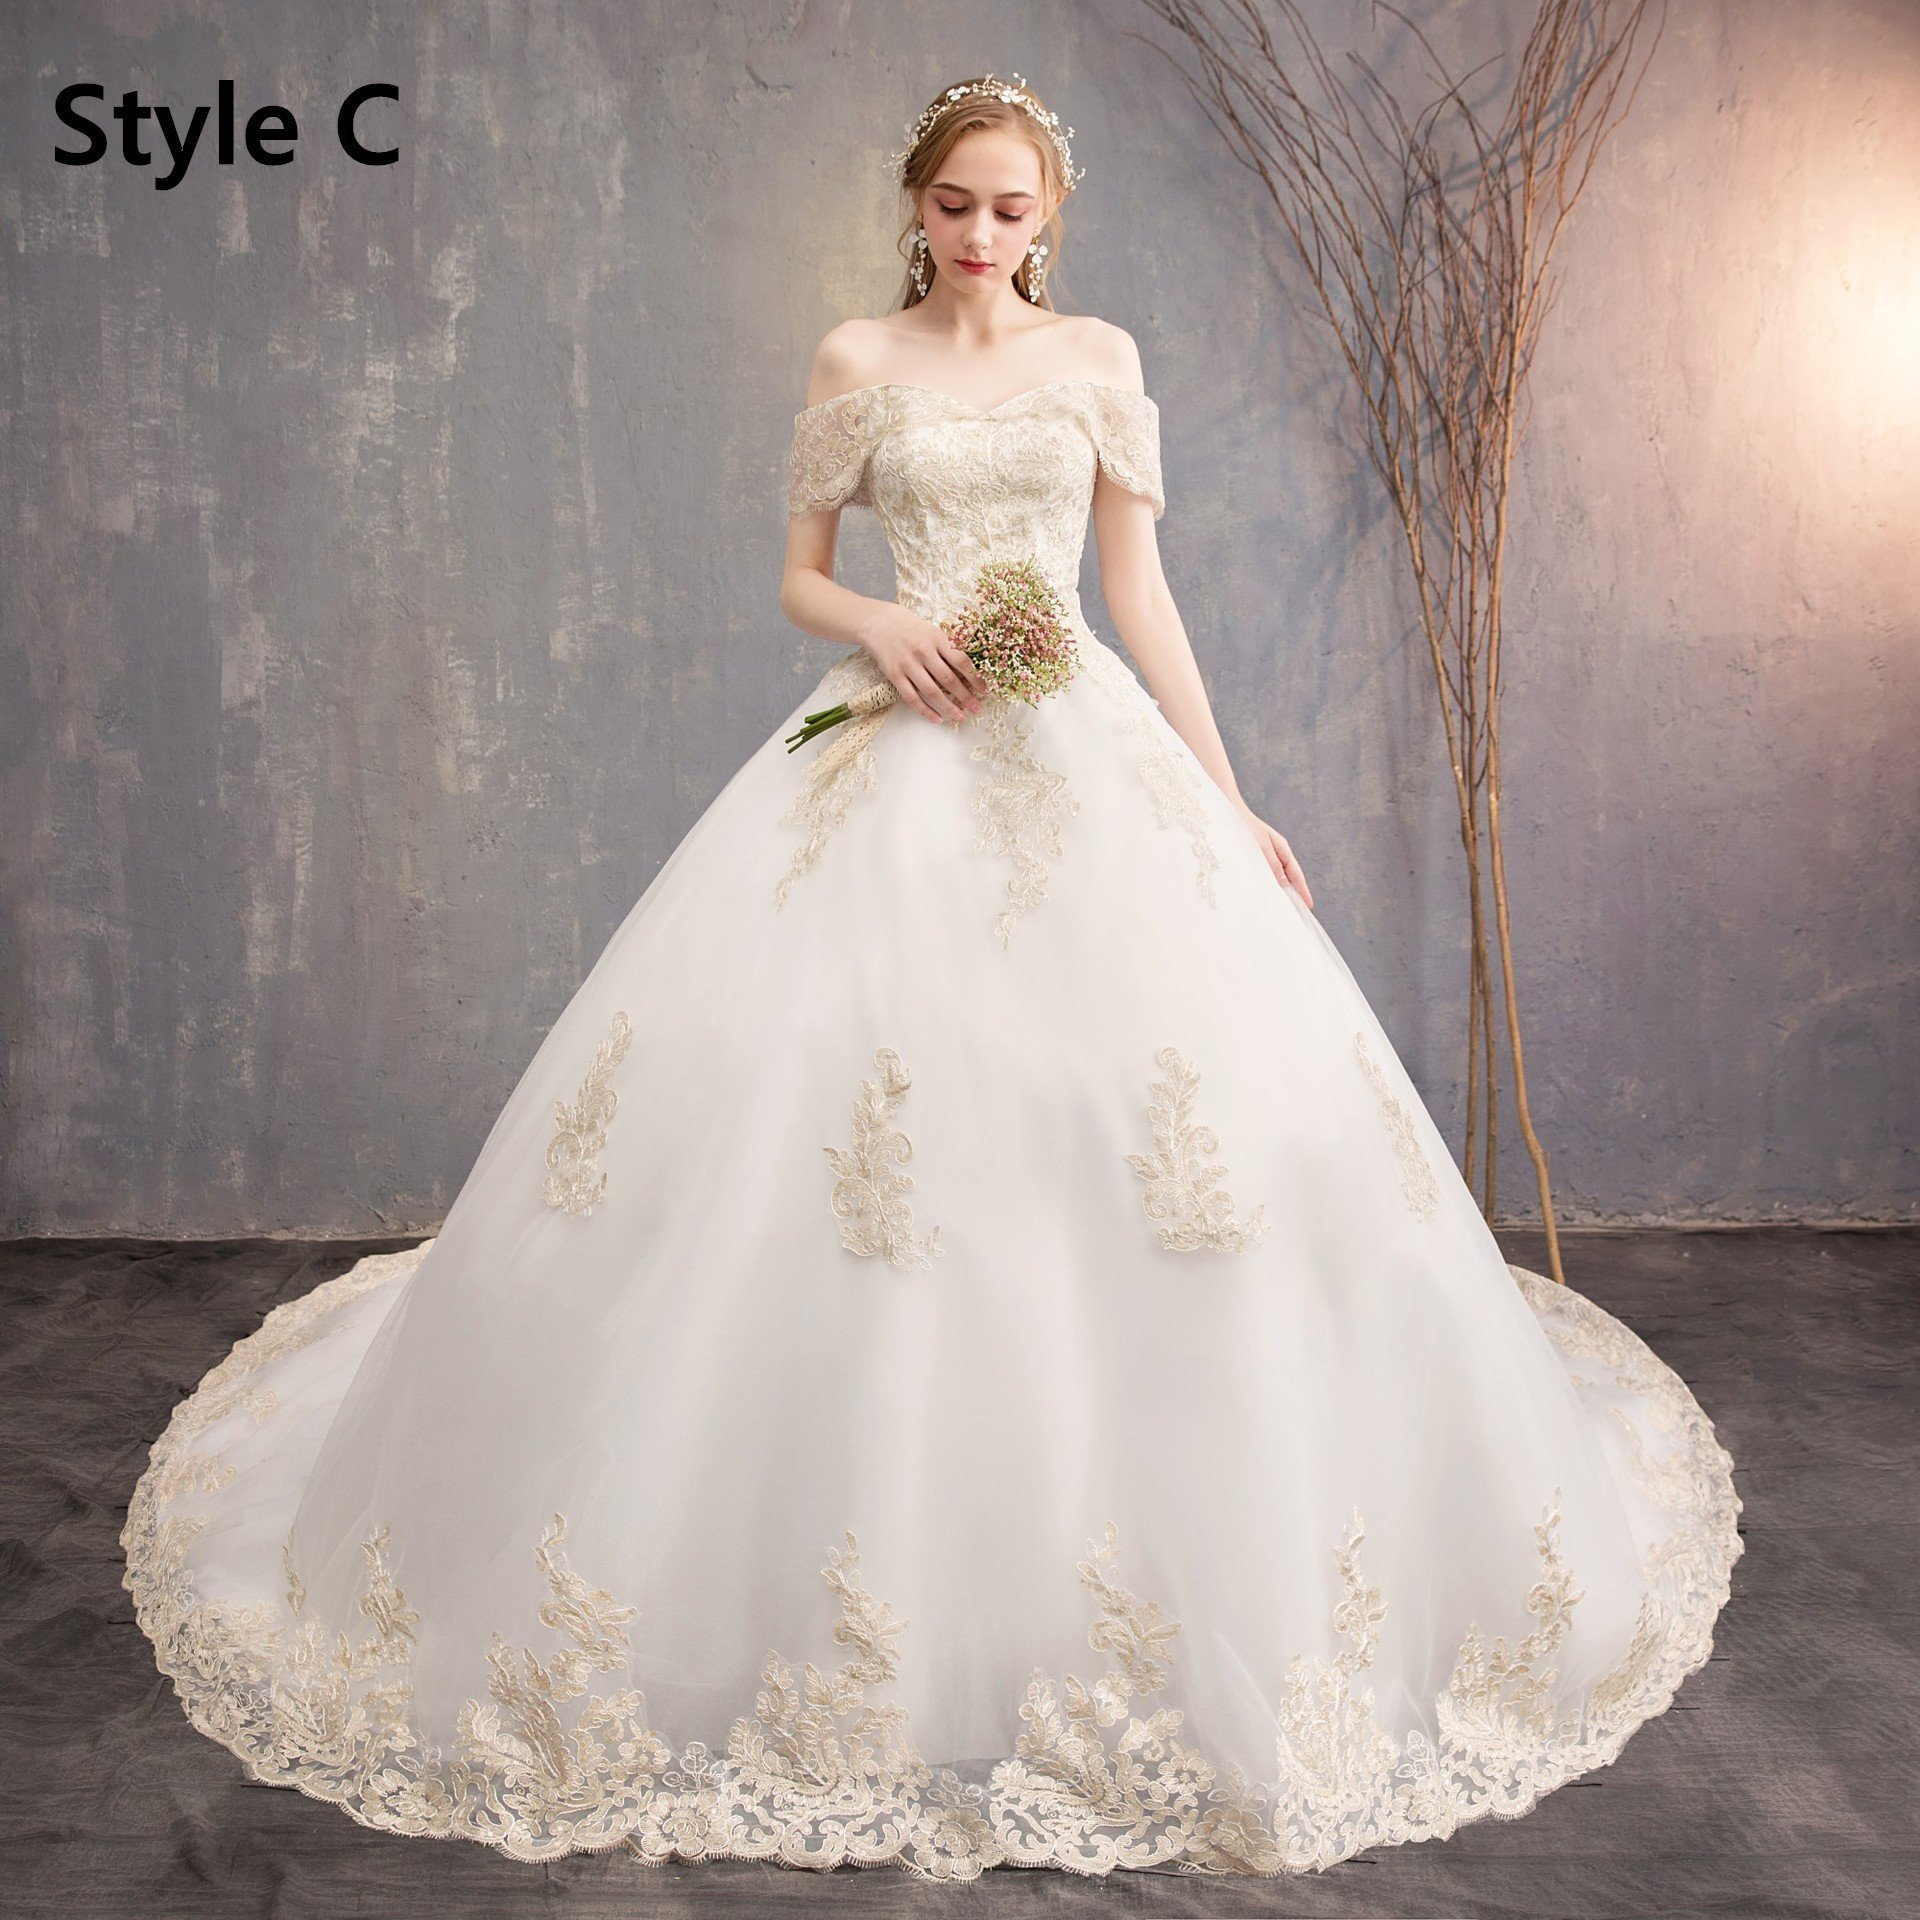 Best Wedding Dresses Lace Dresses Fuchsia Lace Dress Wedding Venues Near Me African Lace Dress Styles 2018 Burnt Orange Bridesmaid Dresses Baby Pink Bridesmaid Dresses Navy Blue Bridesmaid Dresses Uk